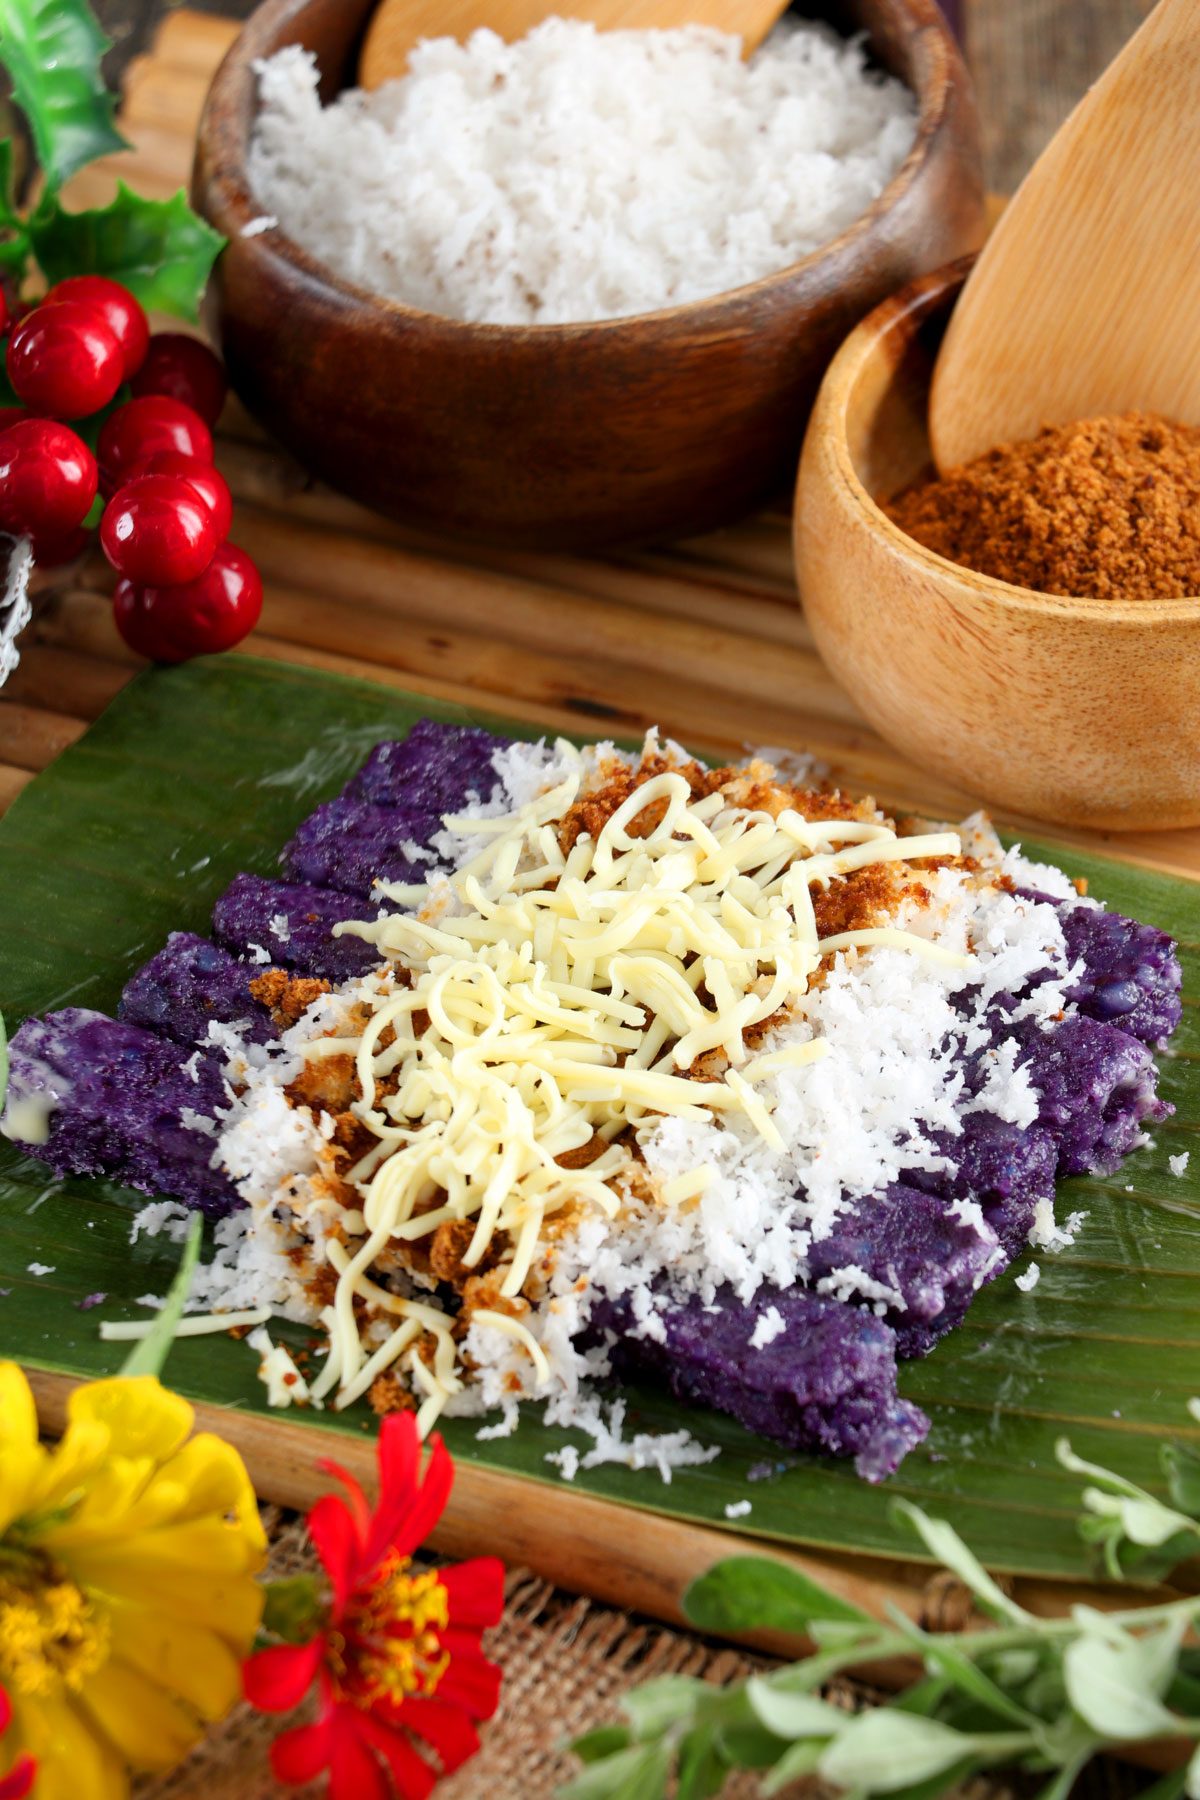 Steamed purple rice cake with grated coconut and muscovado